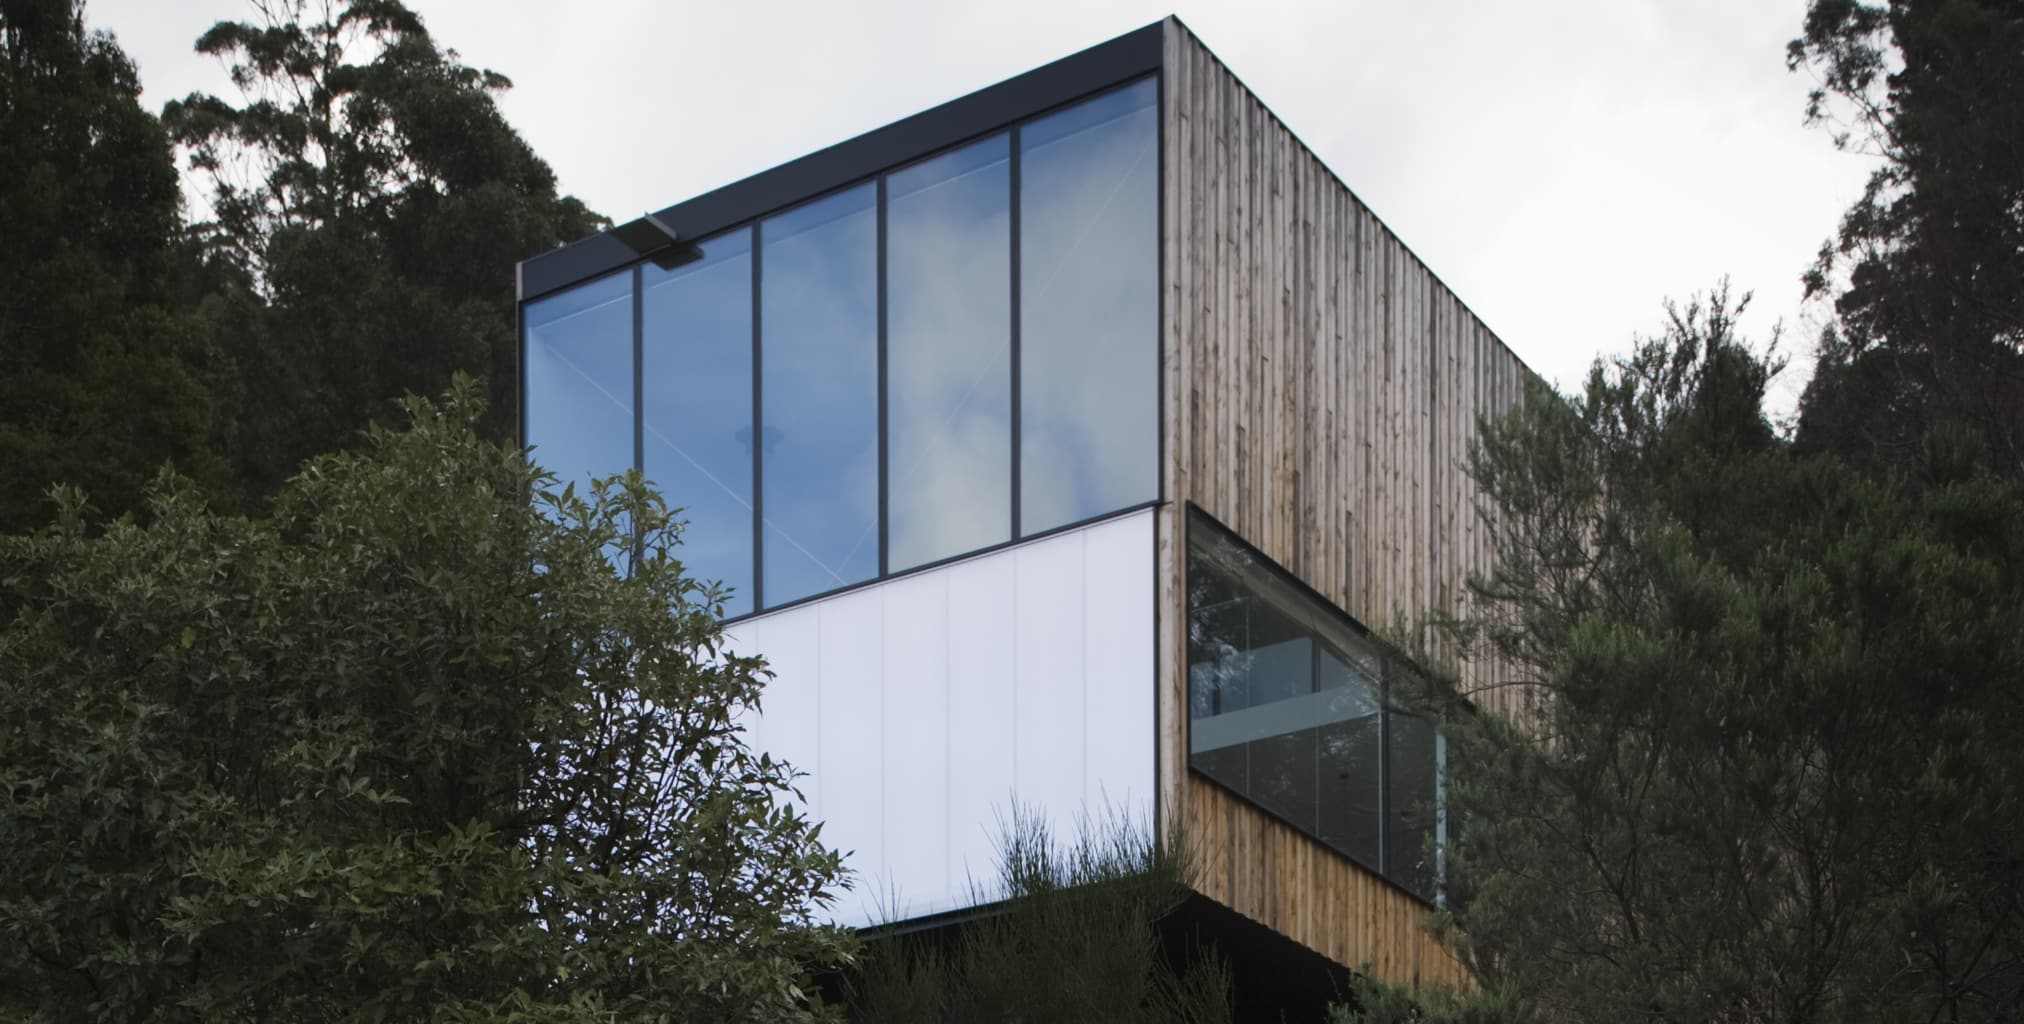 Danpatherm Façade exterior wall cladding panels, bring light and warmth to 'Little Big House'